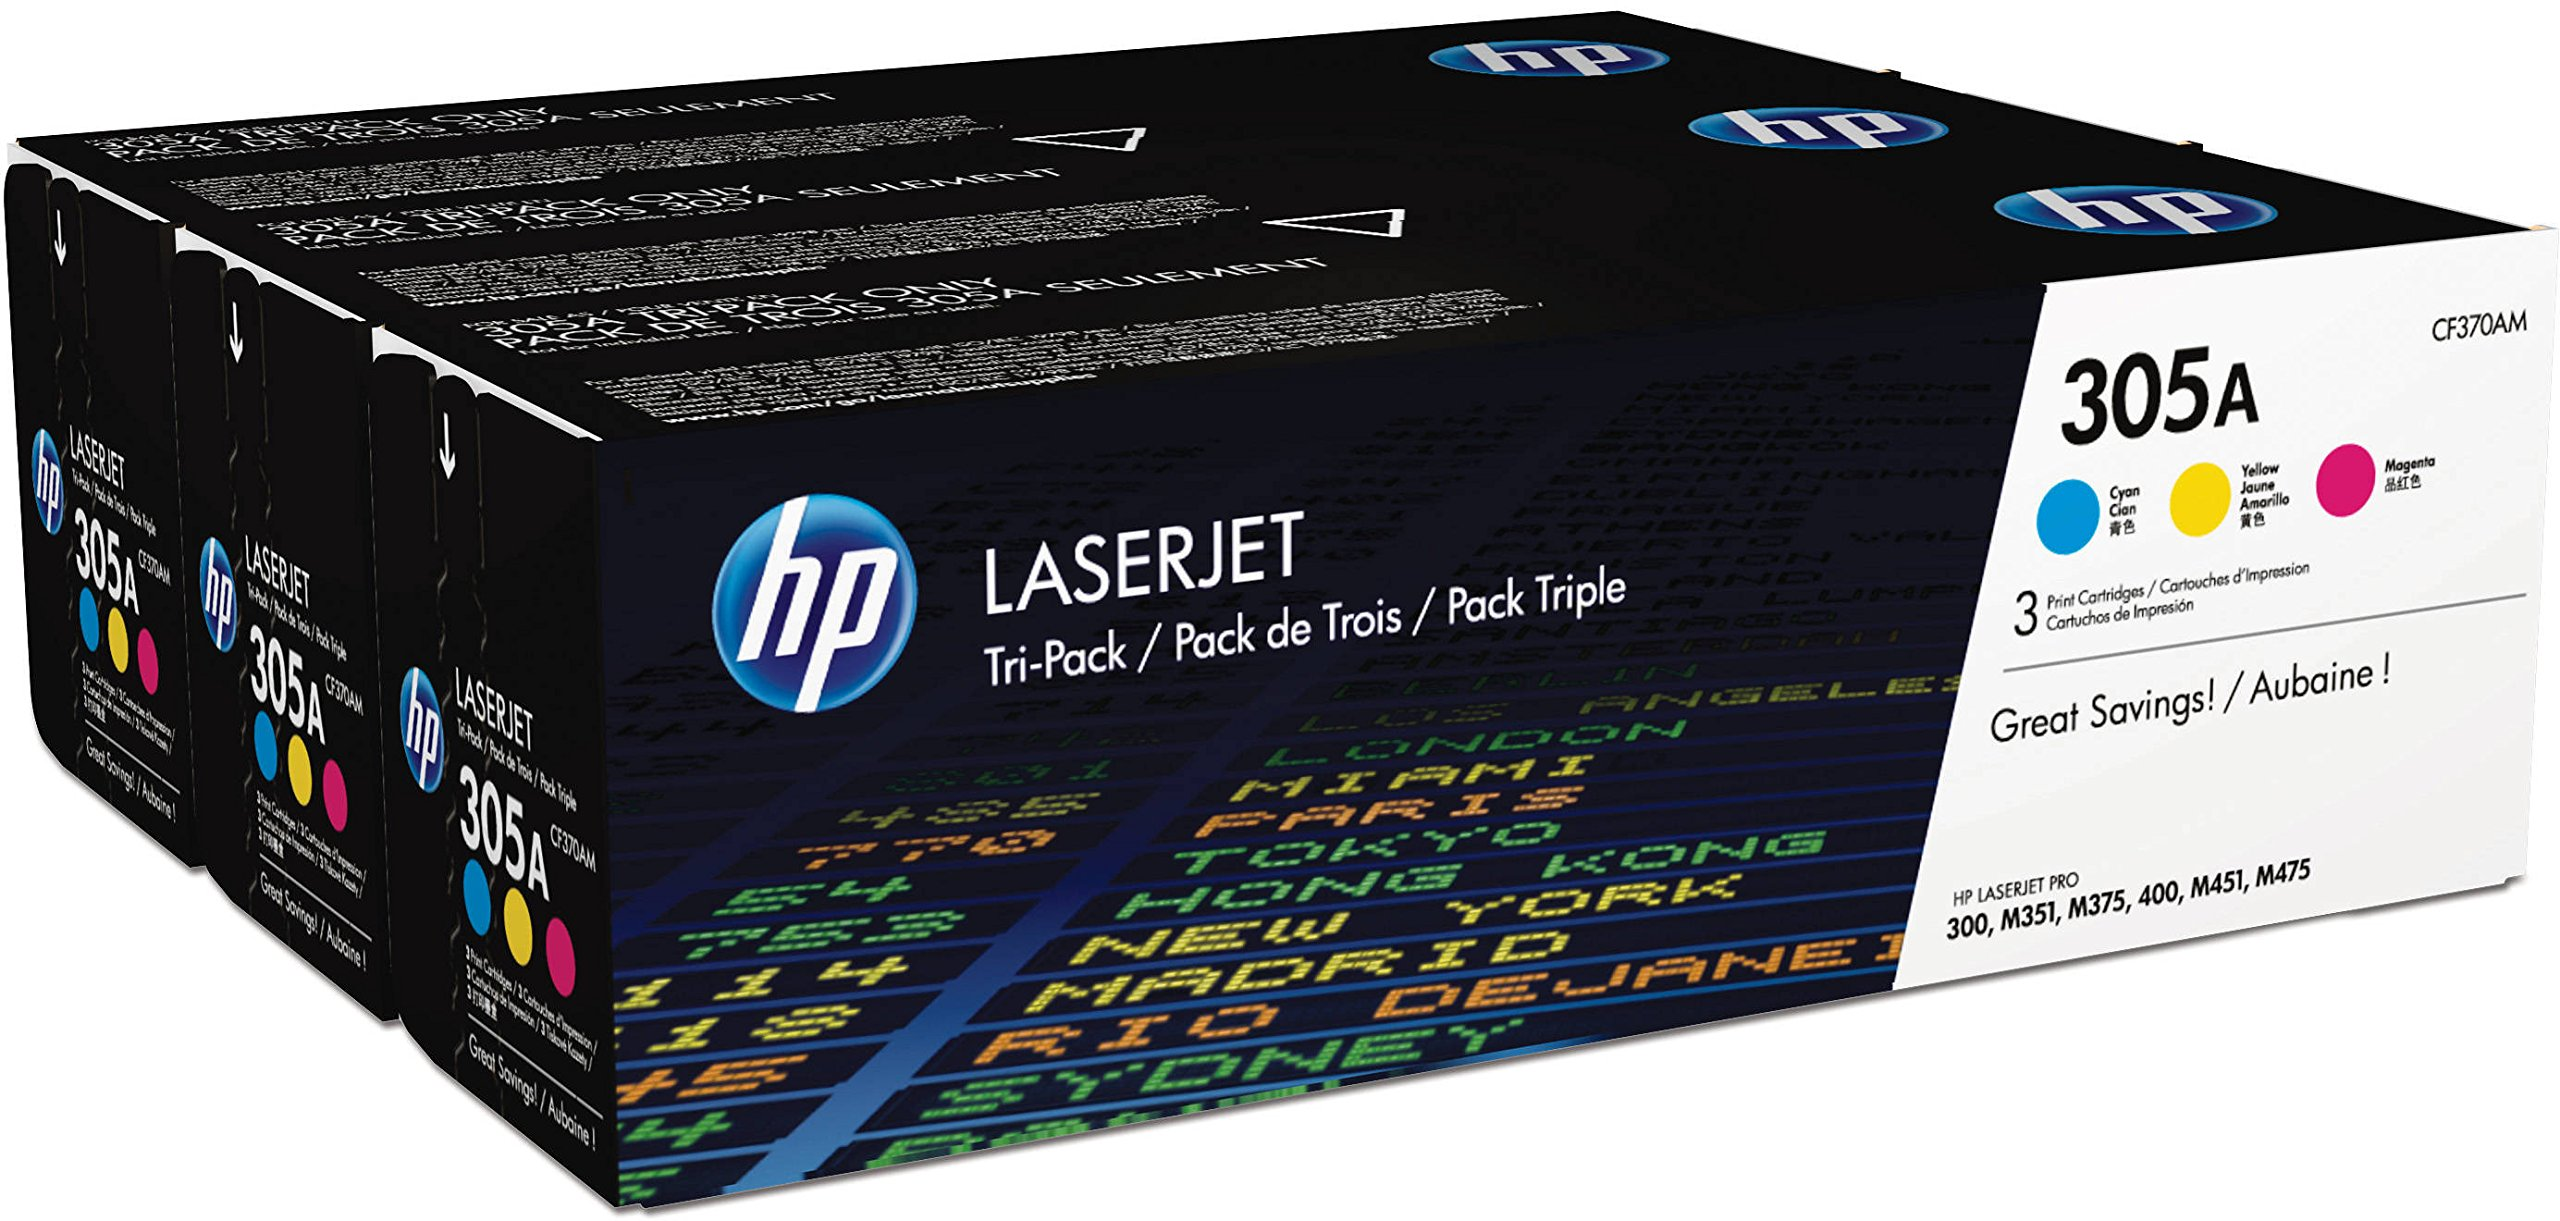 HP CF370AM 305A Cf370A-M Original LaserJet Toner Cartridges Pack Of 3 Cyan Magenta Yellow